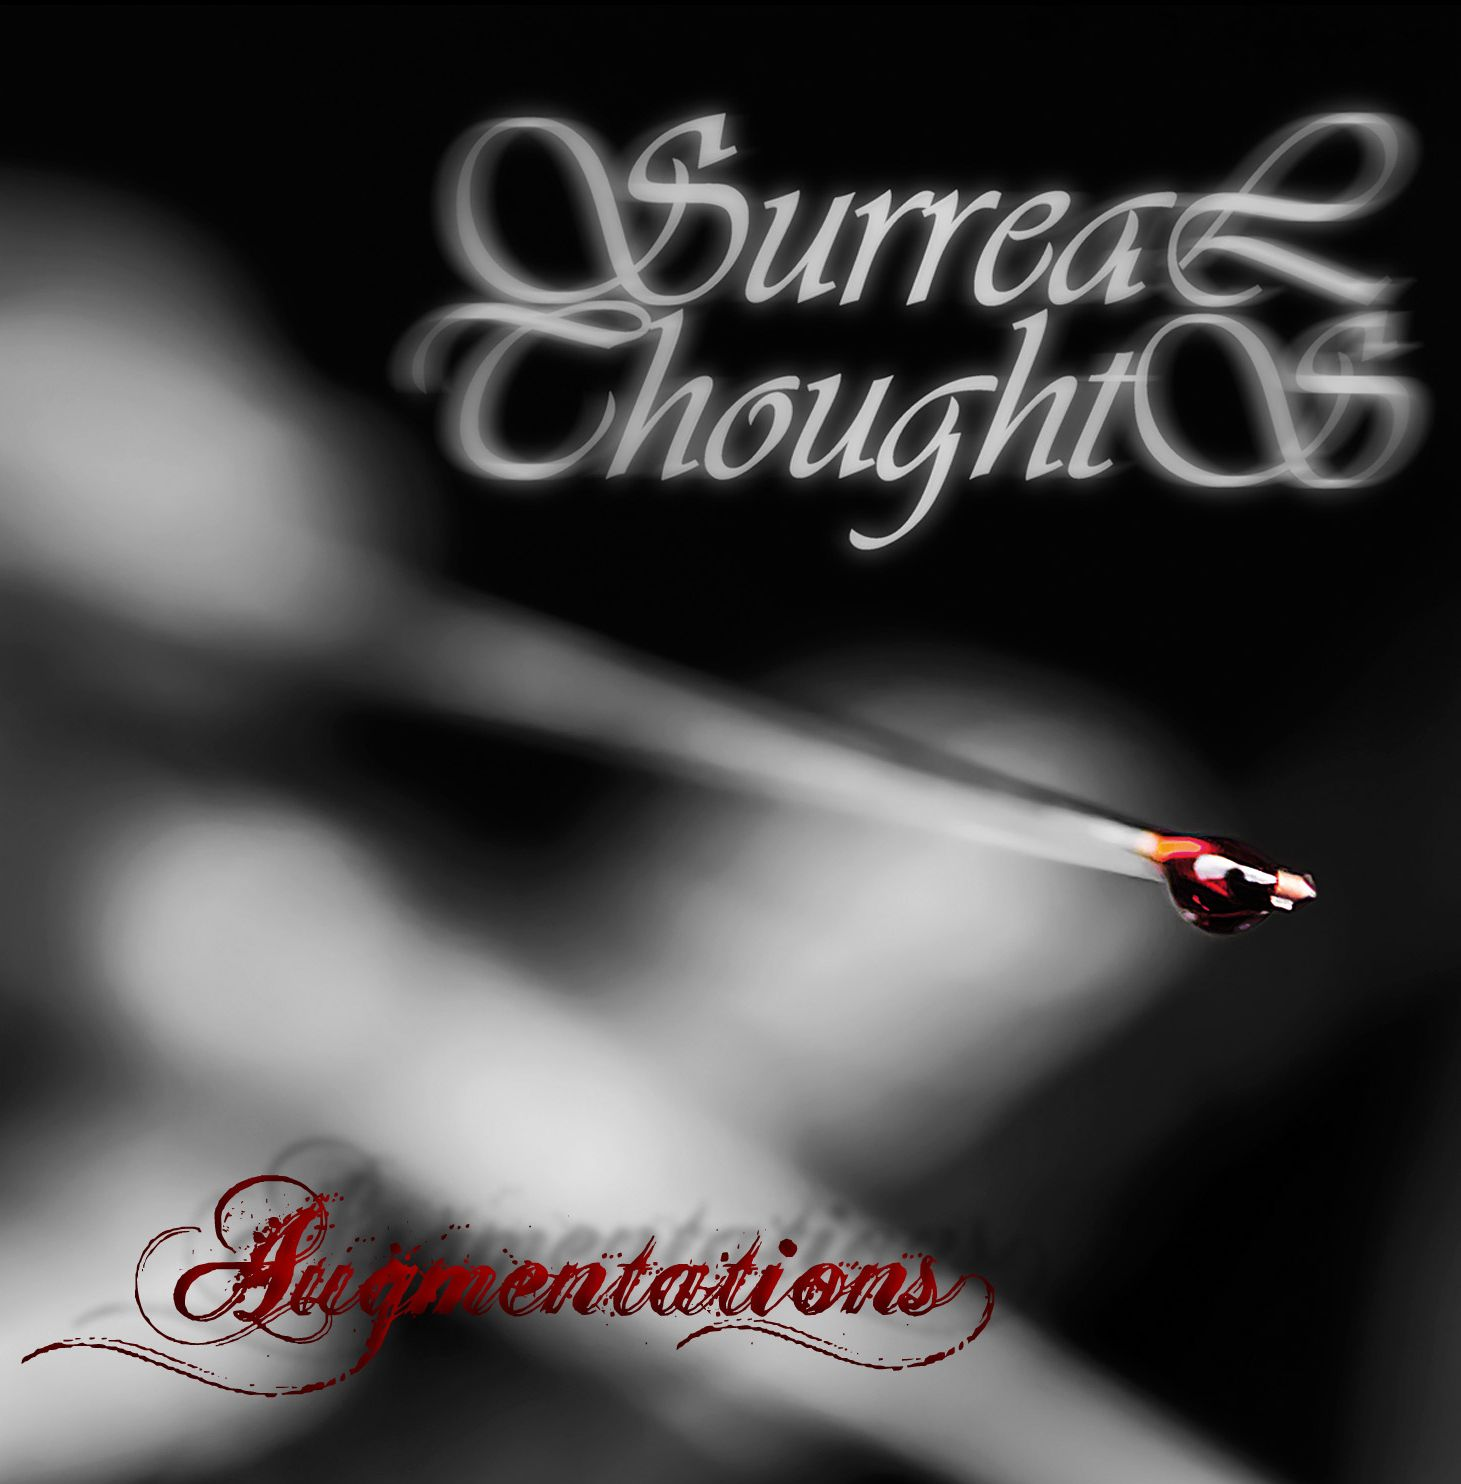 """Surreal Thoughts """"Augmentations"""" 4/6"""